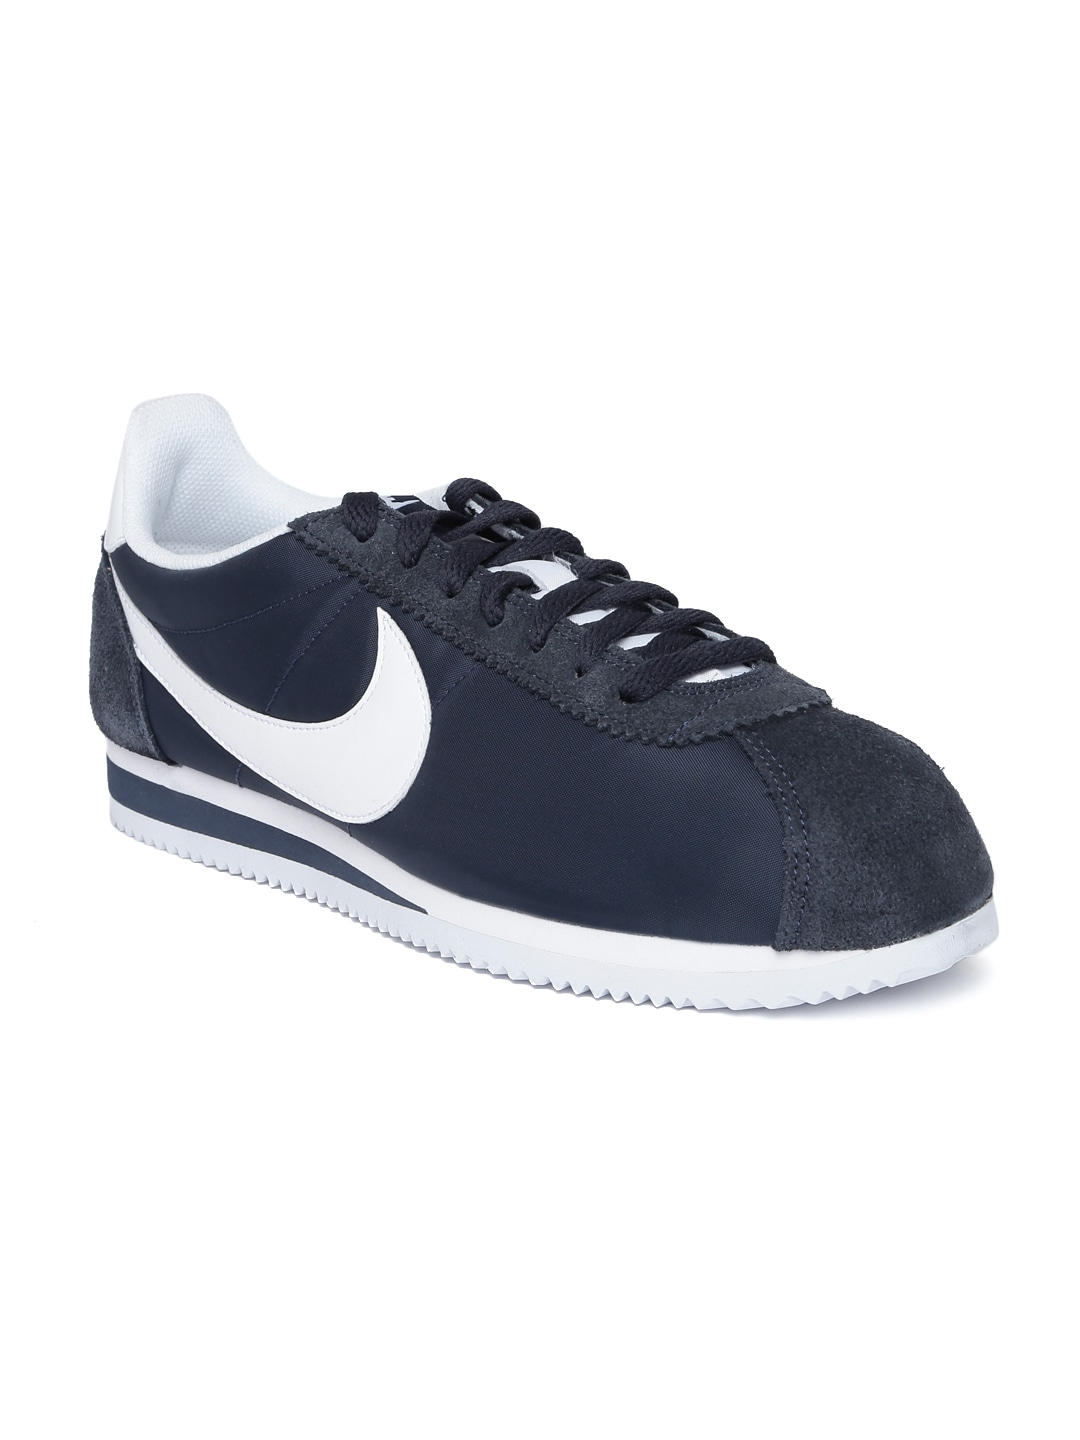 best sneakers 2774a 127a0 Nike Cortez Casual Shoes - Buy Nike Cortez Casual Shoes online in India